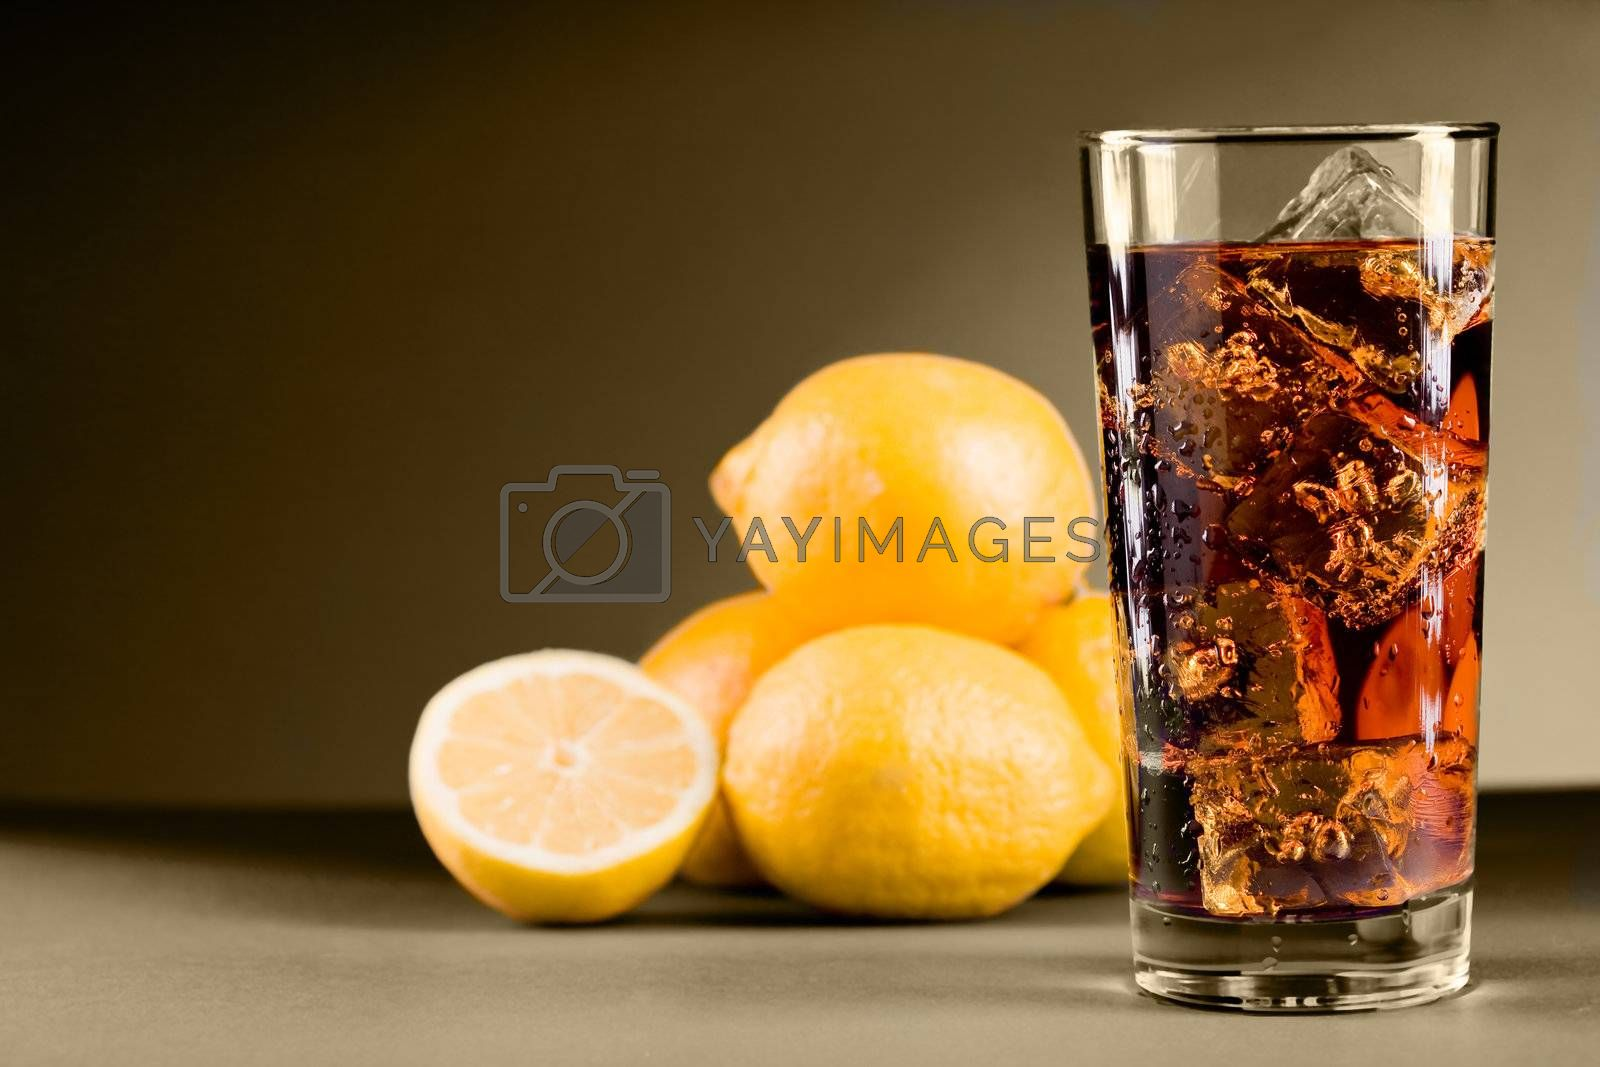 photo of delicious lemon ice team with ice cubes on sepia background